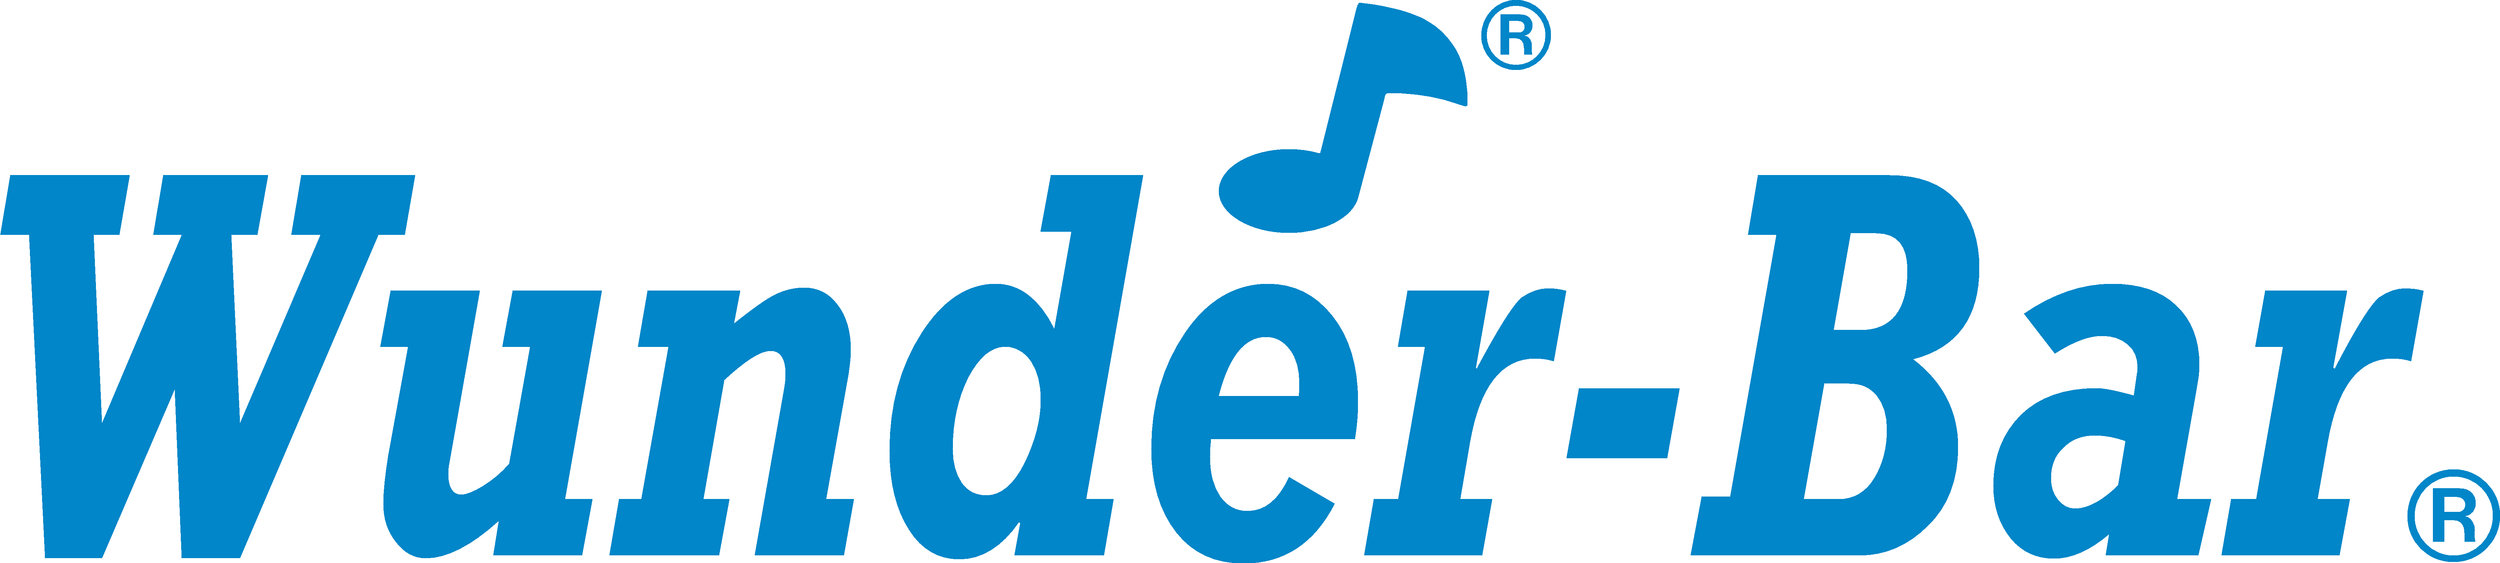 Wunderbar logo registered.jpg